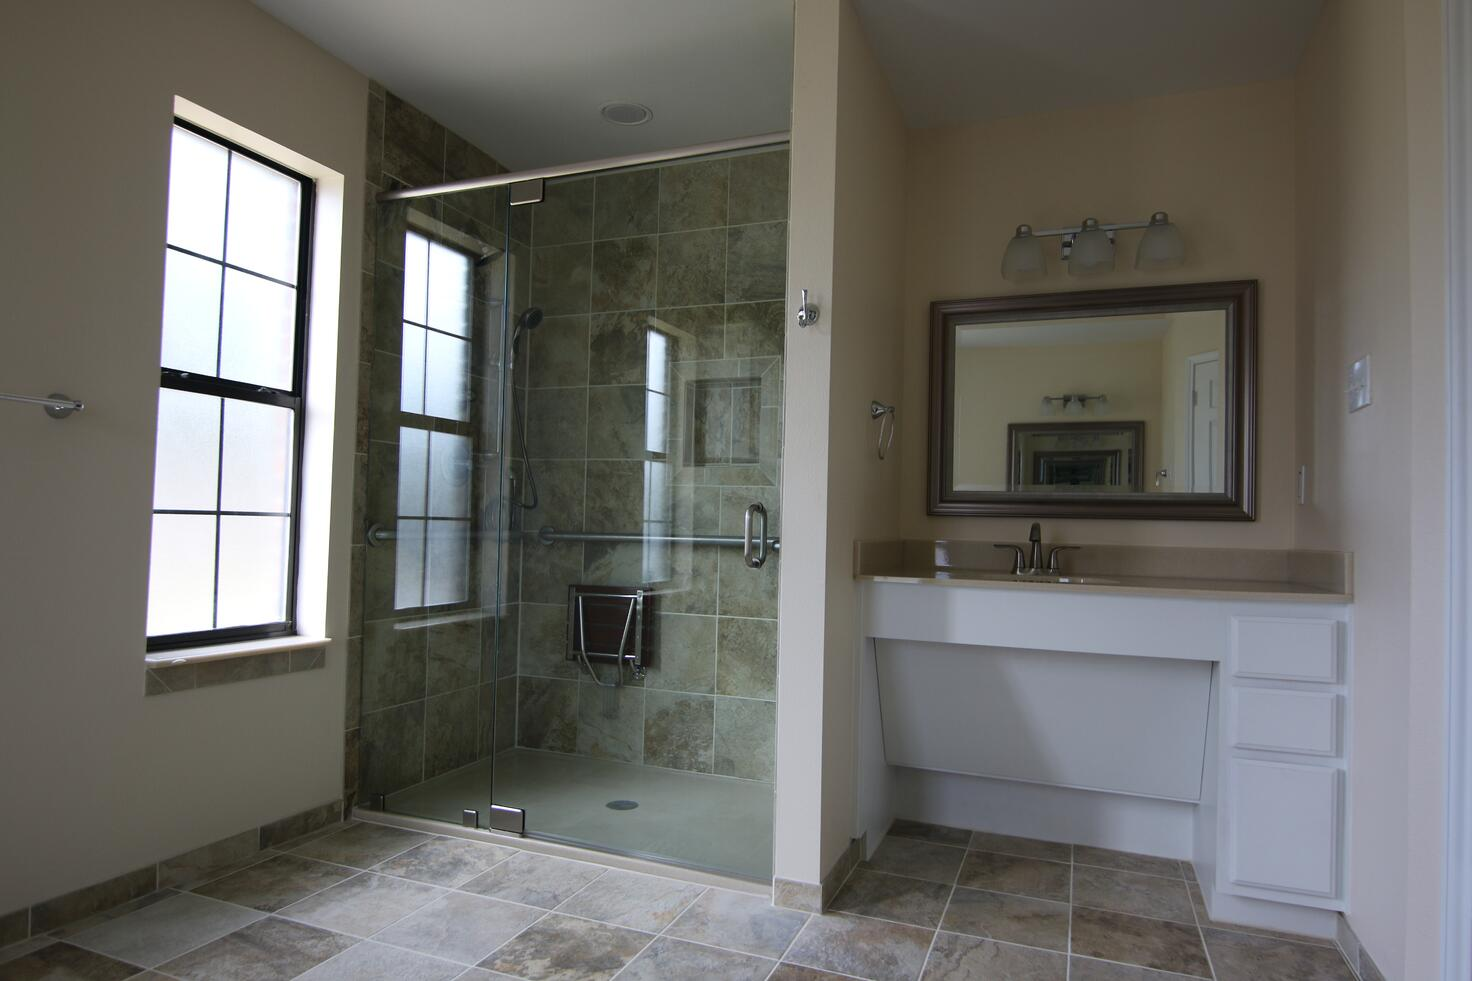 Disability Bathroom Remodeling In Austin, Texas